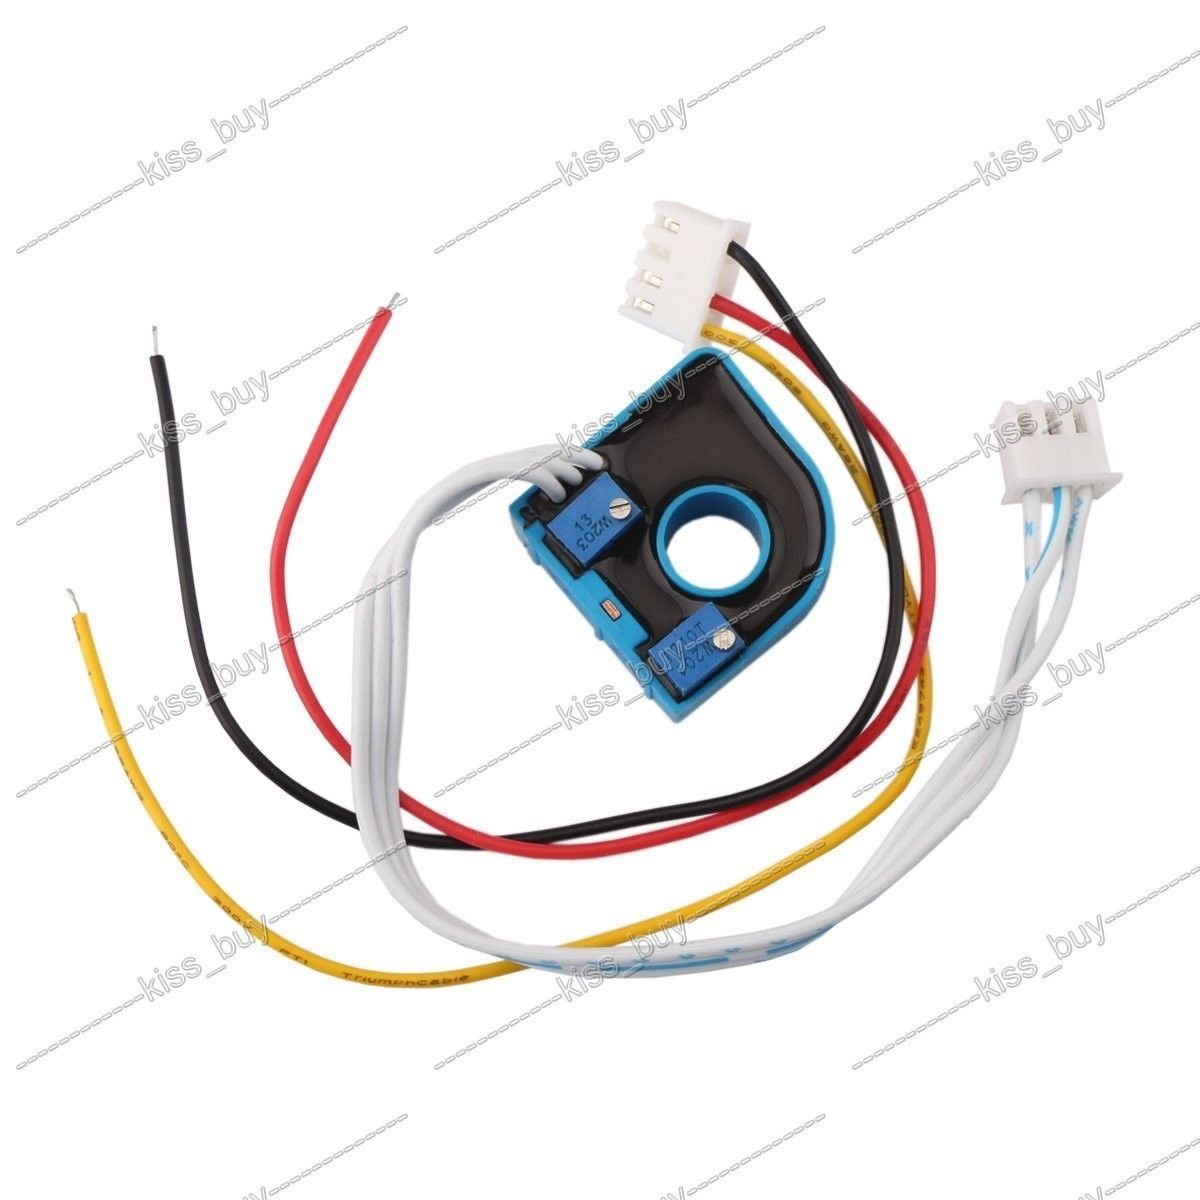 small resolution of dc 0 600v 200a volt amp meter dual display voltage current 12v 24v car voltmeter ammeter charge discharge solar battery monitor in integrated circuits from